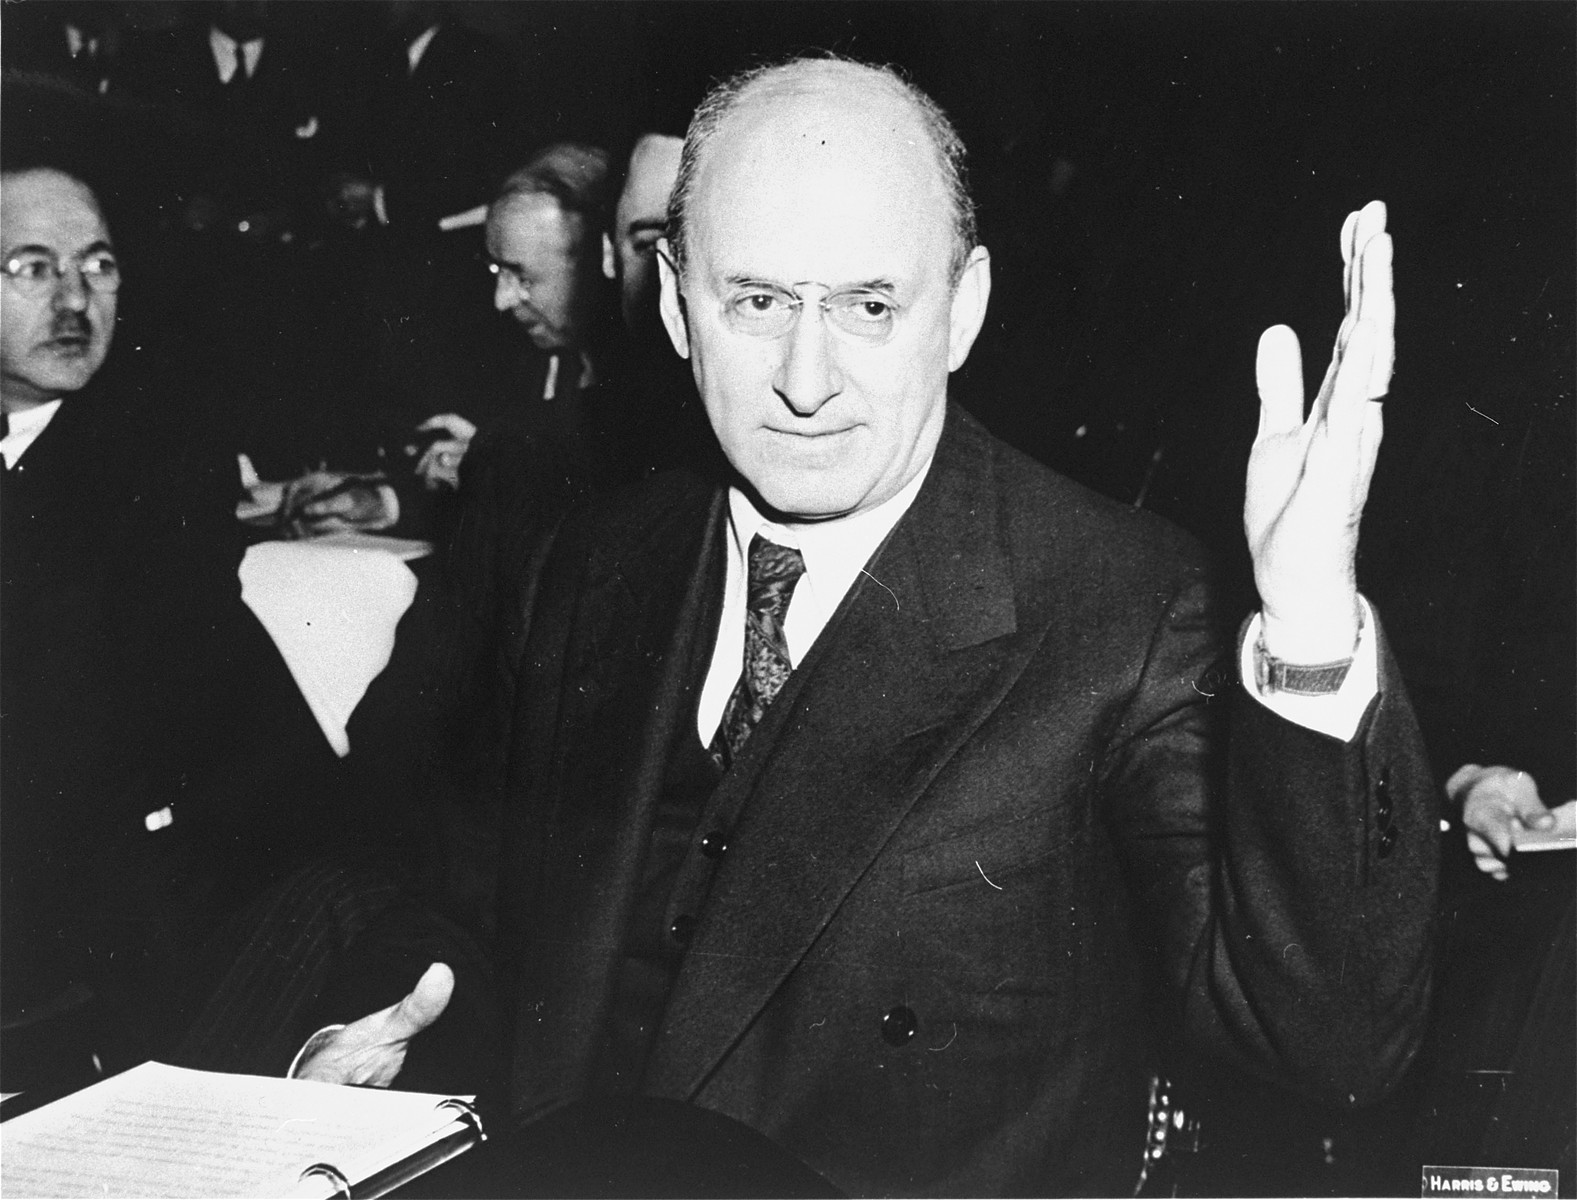 "Henry Morgenthau testifies before the Senate Foreign Relations Commission in support of the Lend-Lease bill to aid Britain.  Henry Morgenthau Jr. (1891-1967). Secretary of the Treasury under Franklin Roosevelt, and highest ranking Jew in the administration.  In January 1944, after receiving a report prepared by his subordinates on ""the acquiescence of this government in the murder of the Jews,"" Morgenthau wrote a personal report to the President which led to the establishment of the War Refugee Board.  After the war he became Chairman of the UJA (1946-50) and became involved with many Zionist causes."